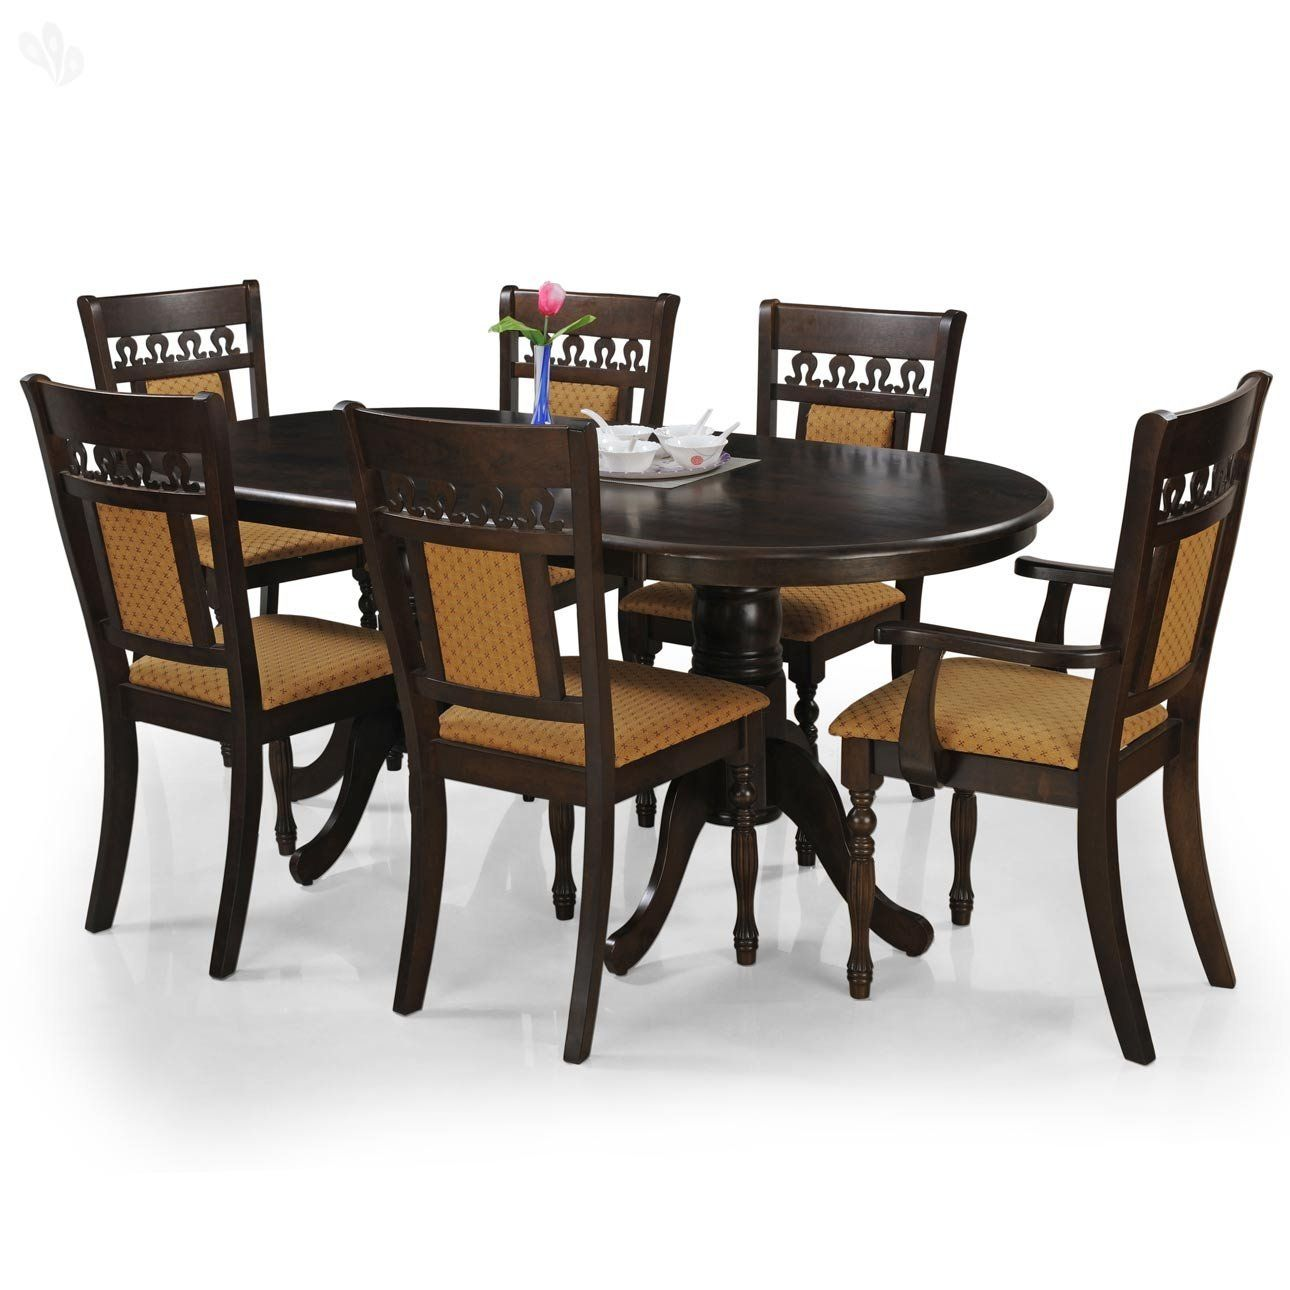 Royal Oak Angel Six Seater Dining Table Set Brown Dining Table